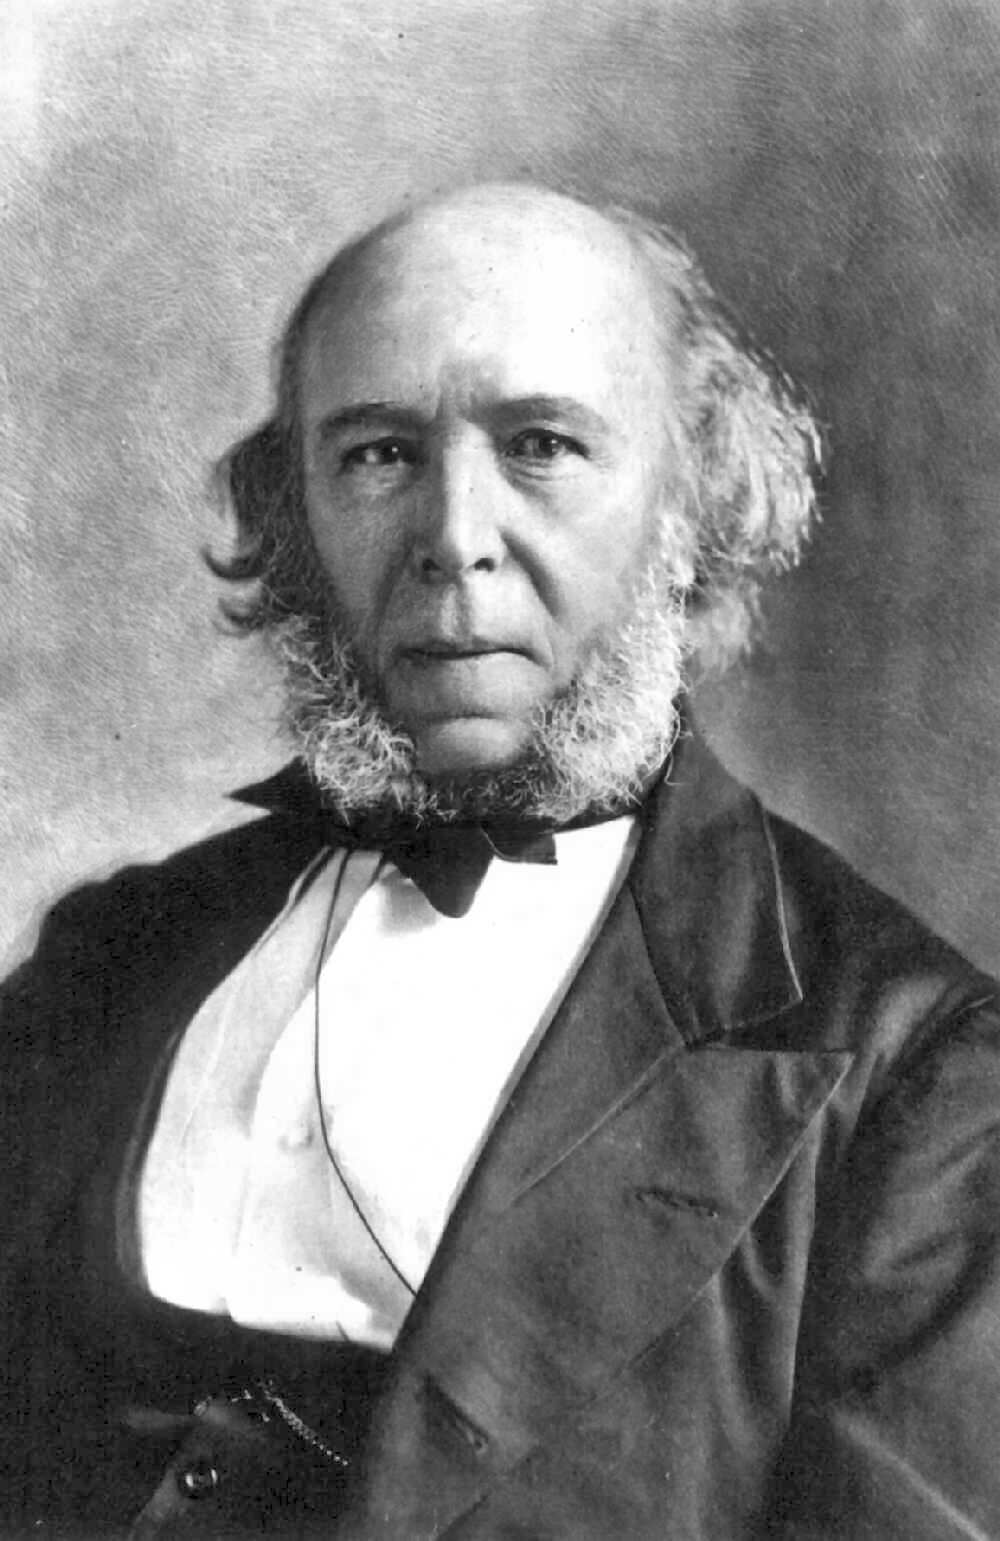 Inappropriate Poetic Subjects #9 – Herbert Spencer's Sideburns